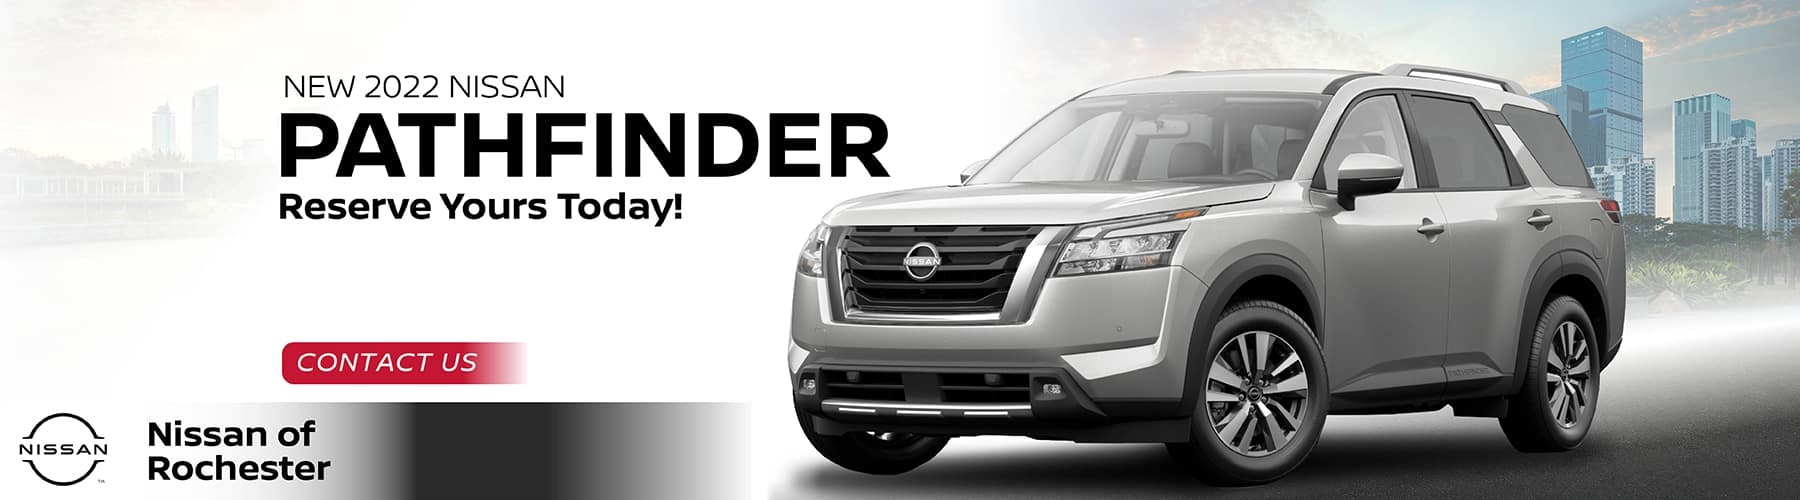 Reserve Your 2022 Pathfinder Today | Nissan of Rochester